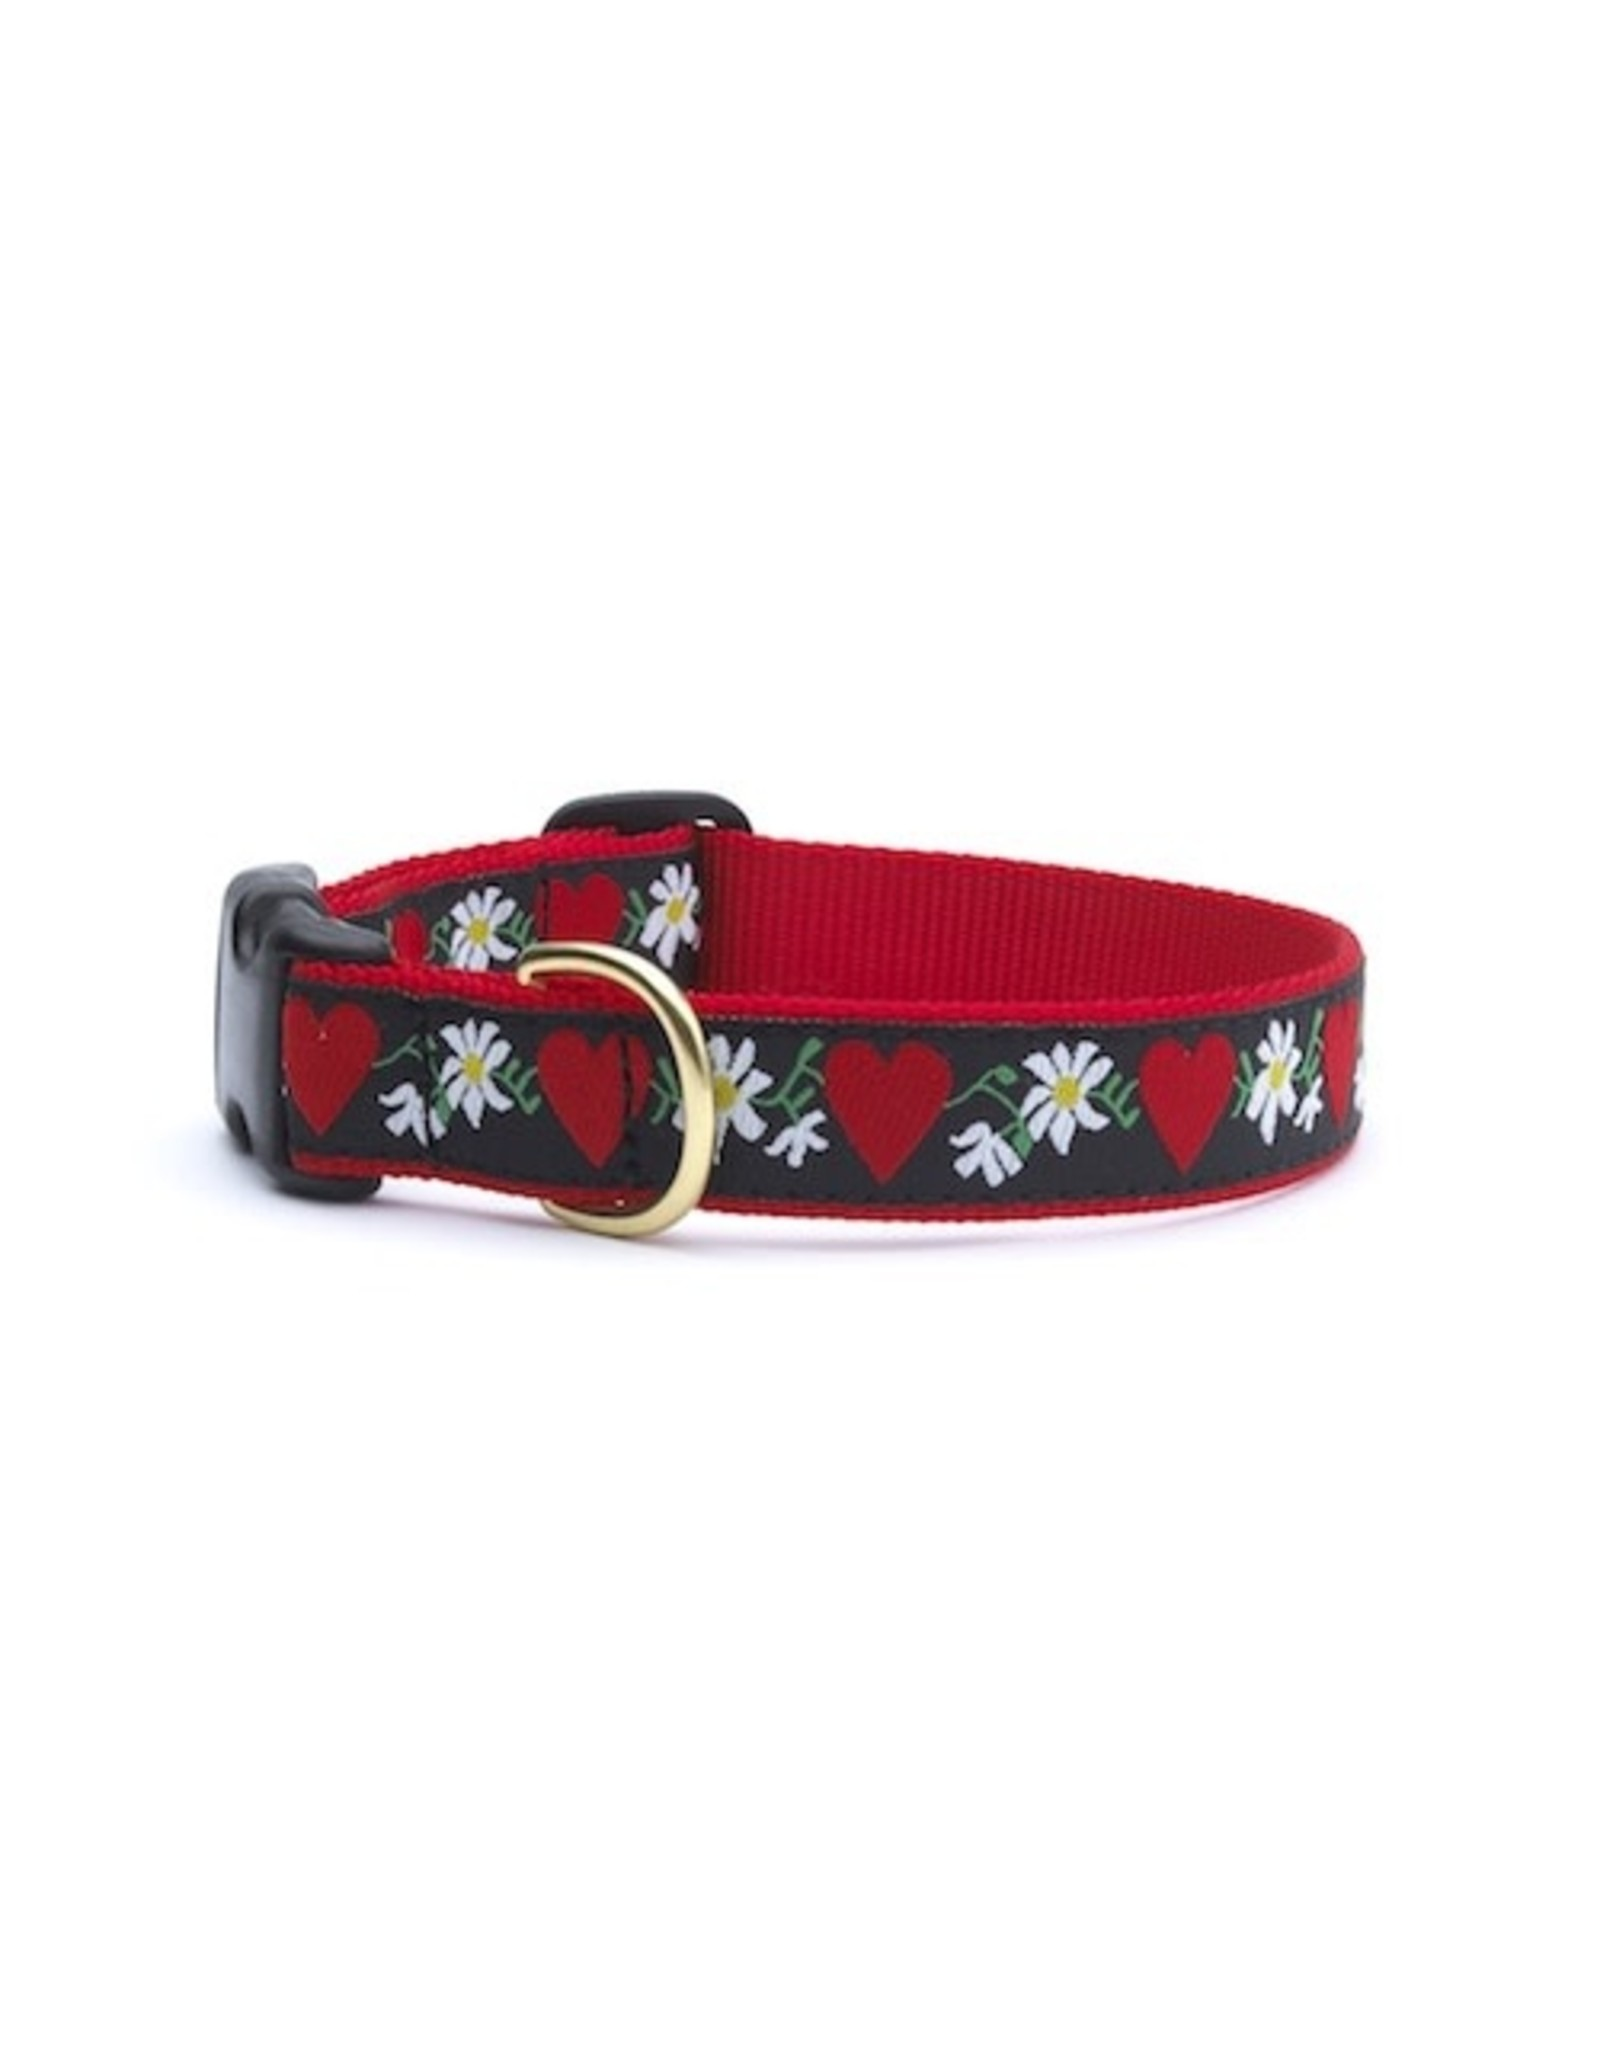 Up Country Hearts & Flowers Collar: Wide, L